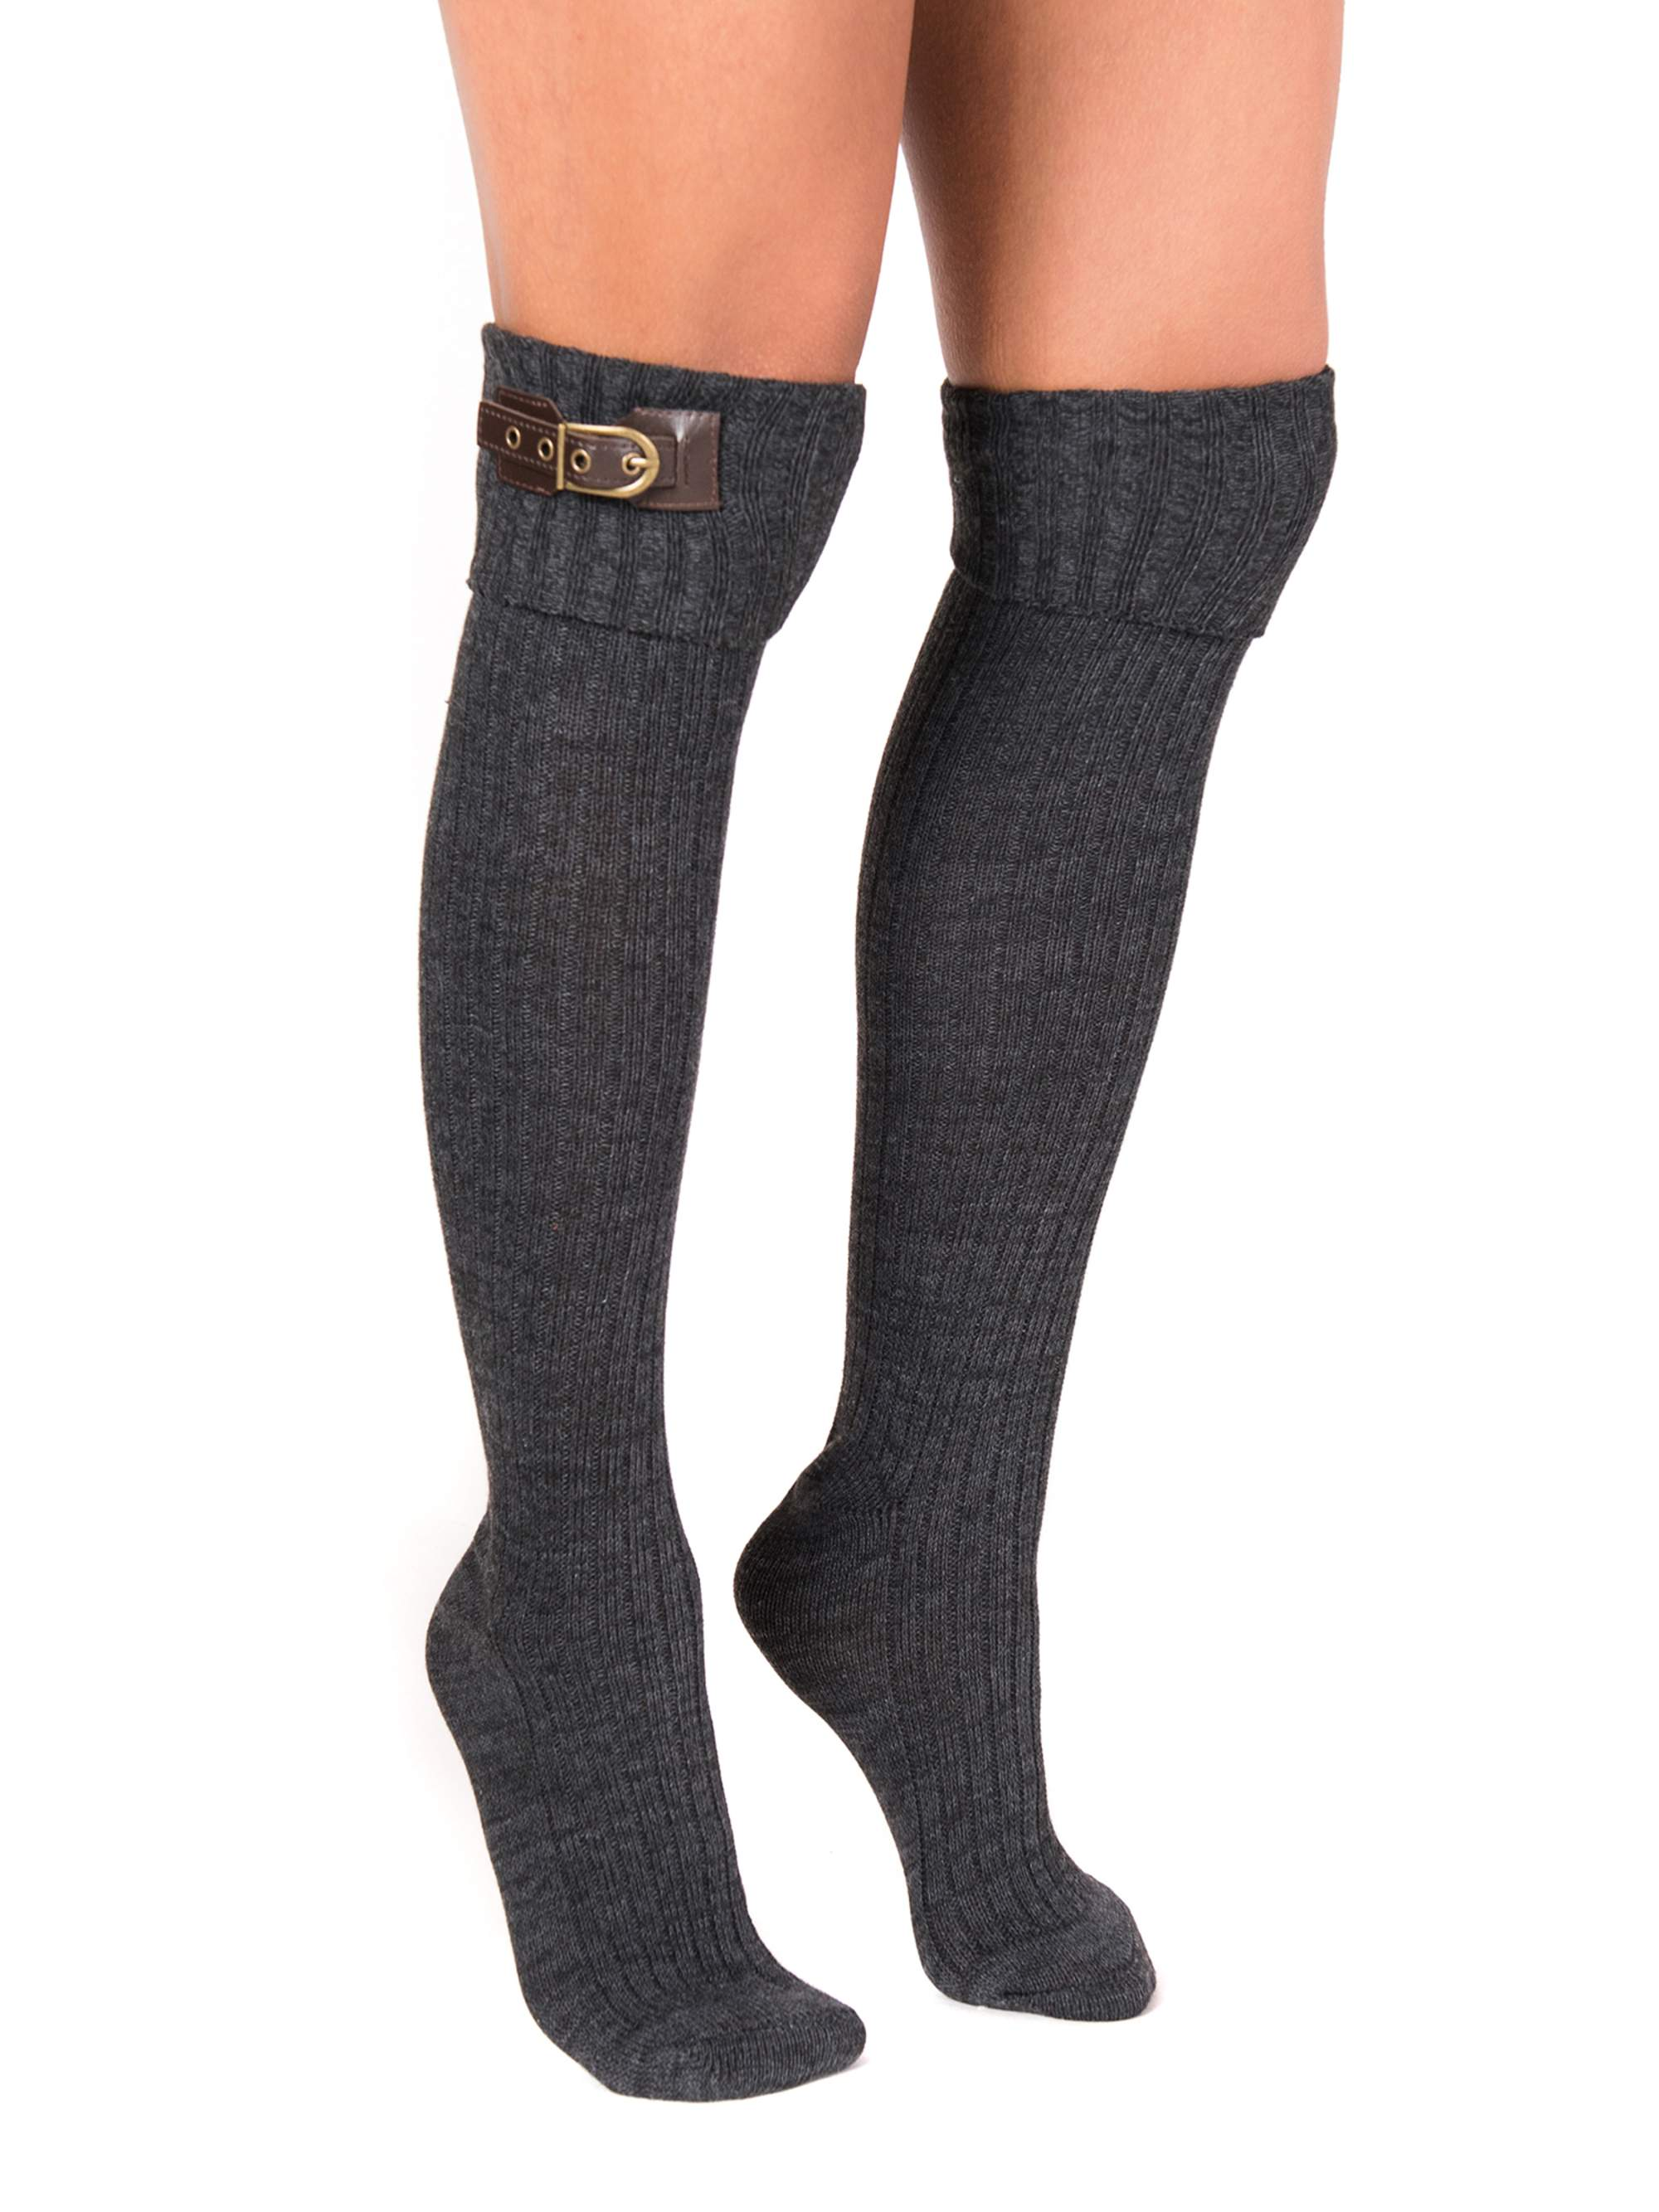 MUK LUKS® Women's 3 Pair Buckle Cuff Over the Knee Socks